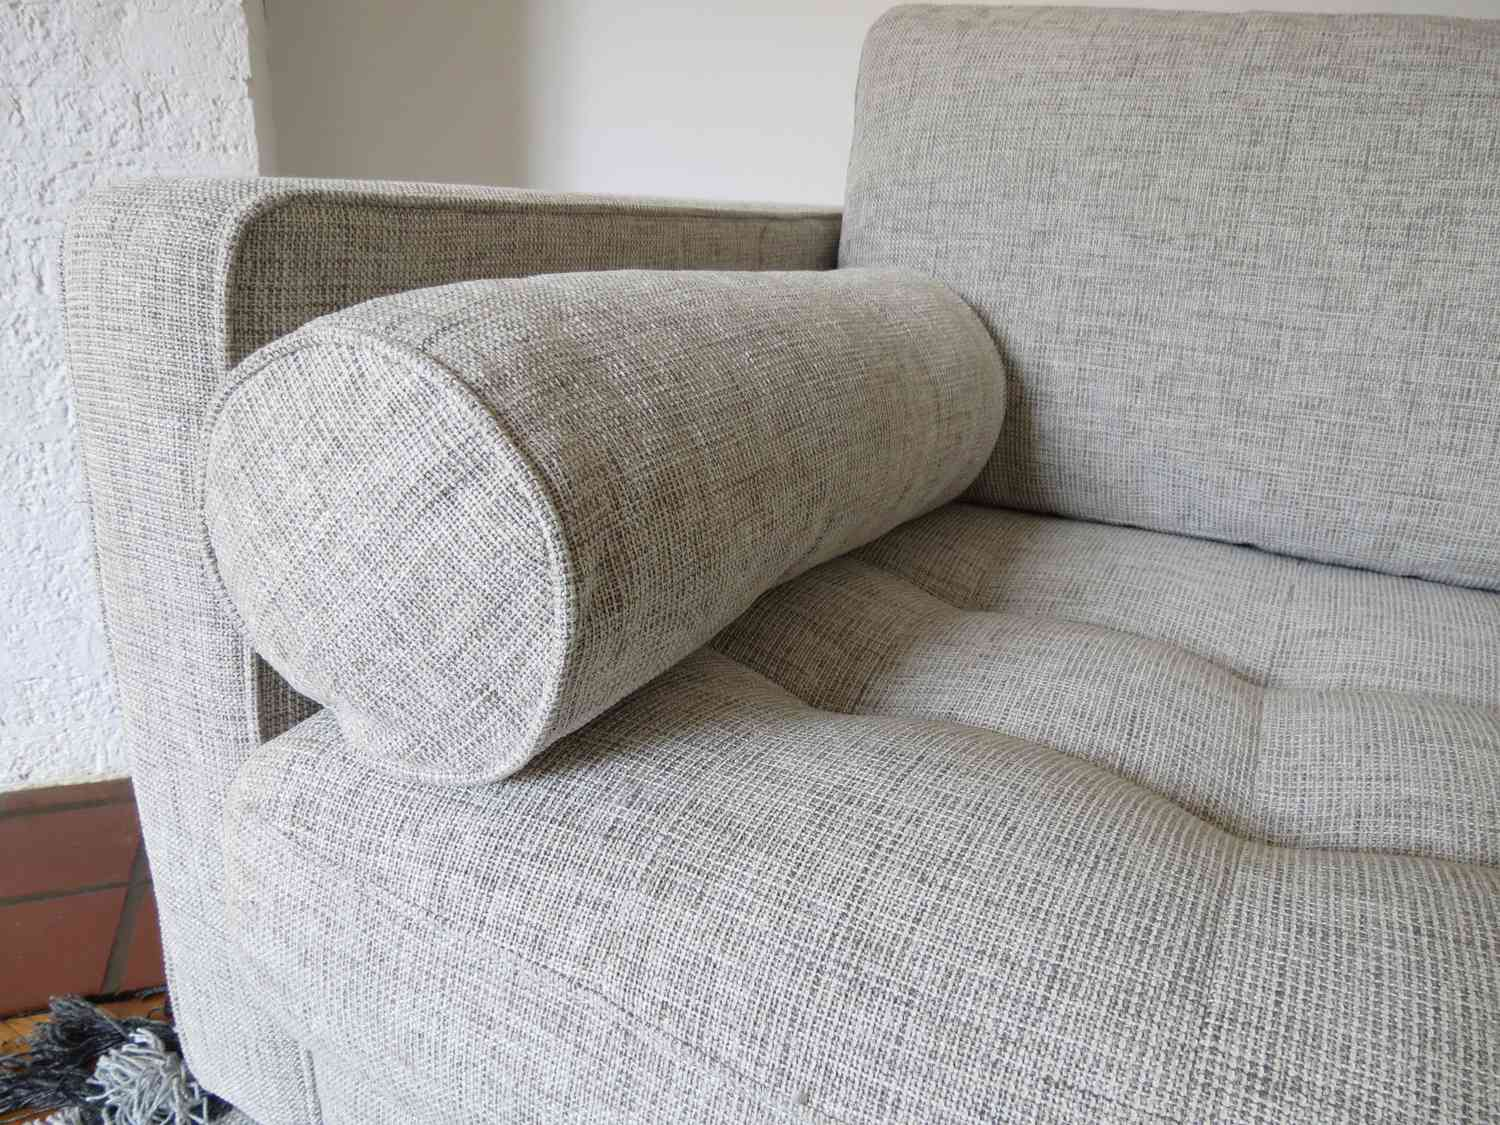 Article Sven Sofa Review: High Marks On Style And Quality